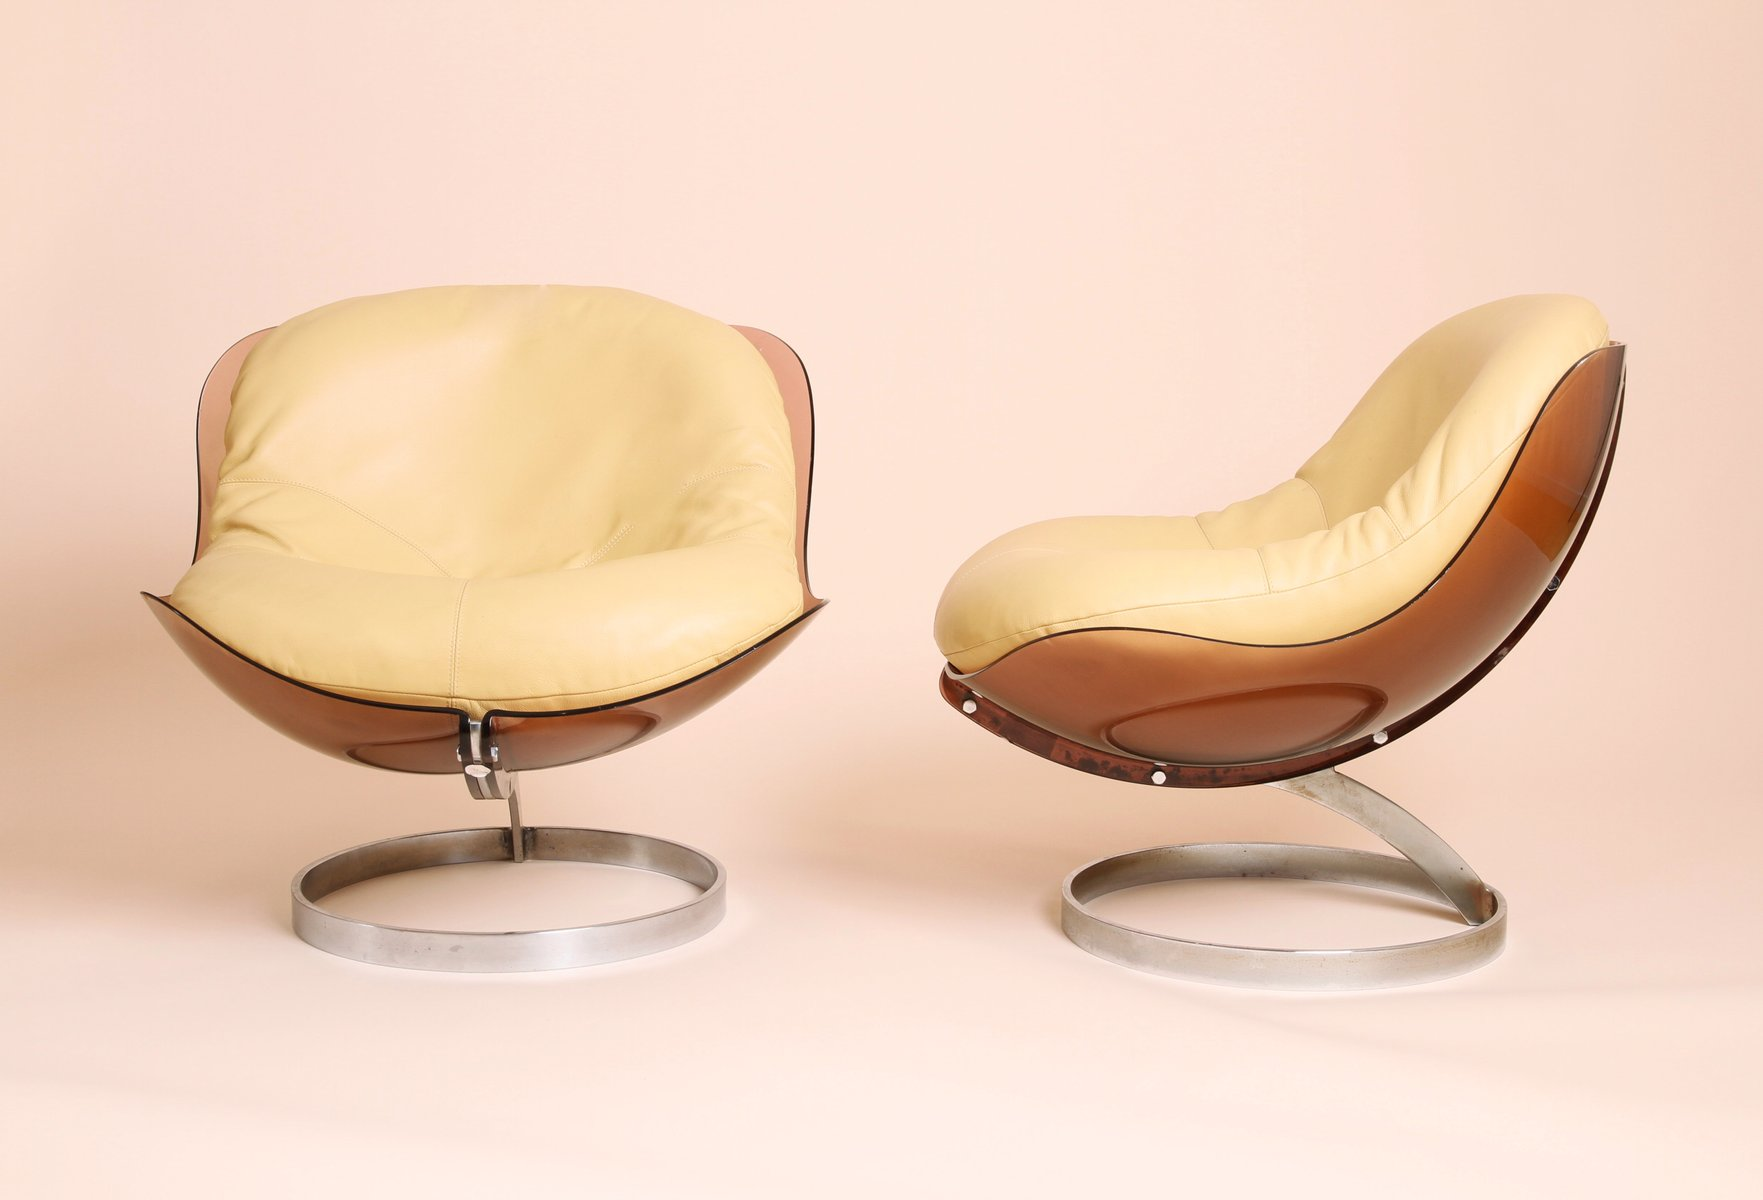 Sphere Lounge Chair by Boris Tabacoff for MMM 1970s Set of 2 for